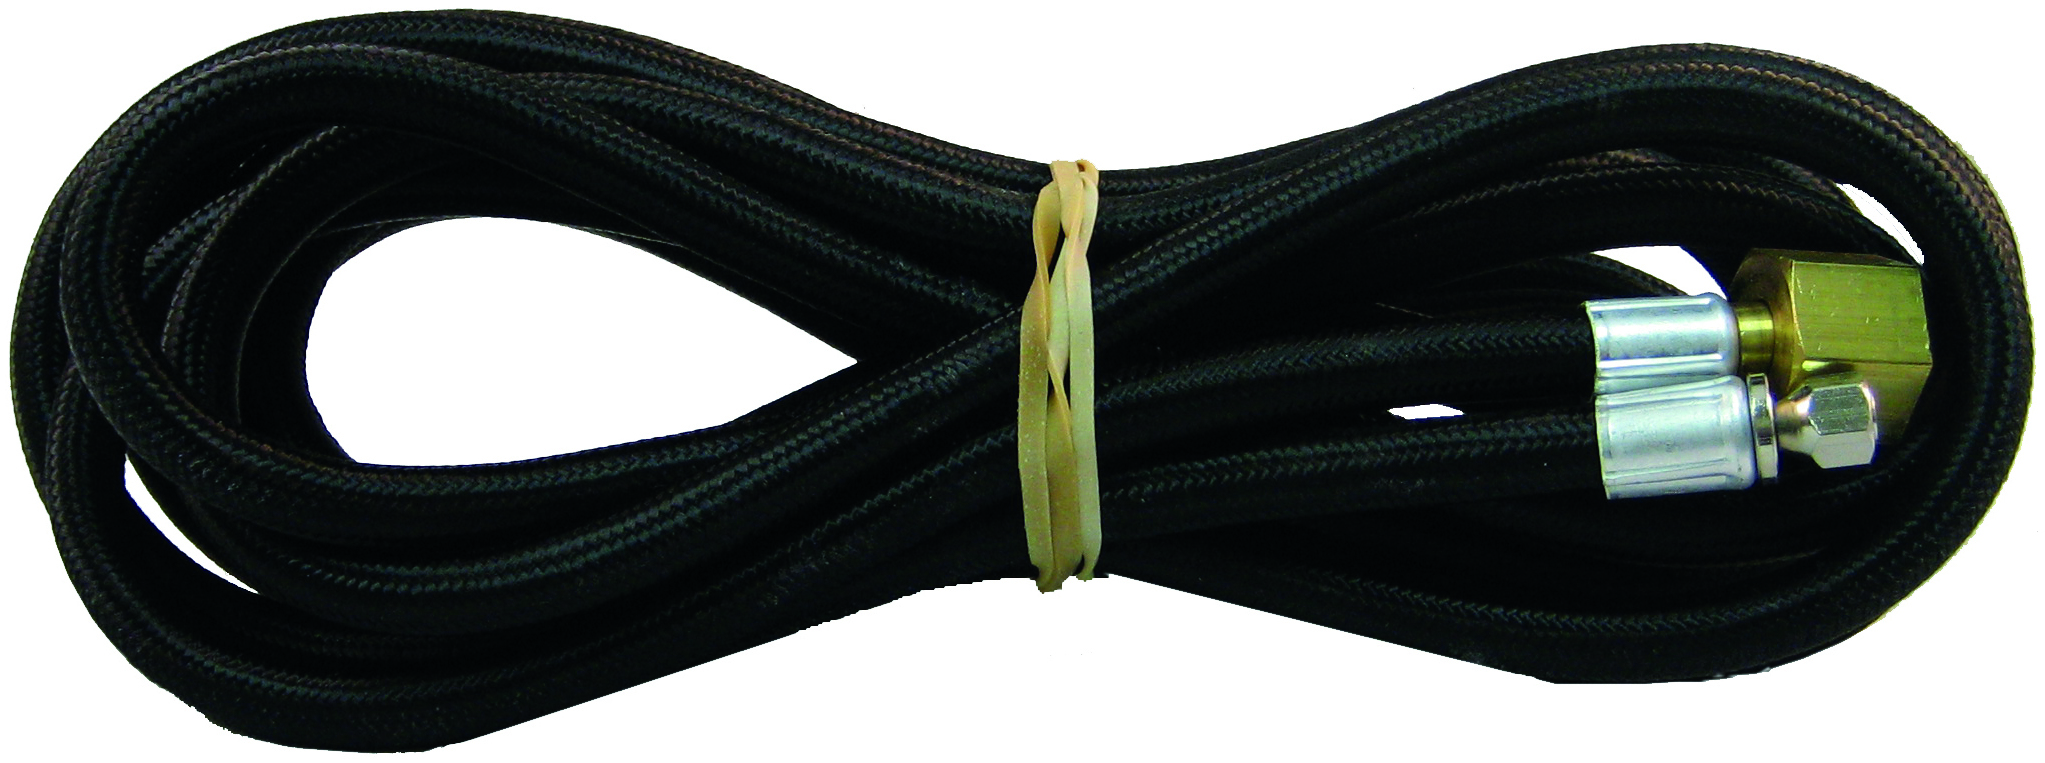 10′ Braided Hose Airline | R50-2011